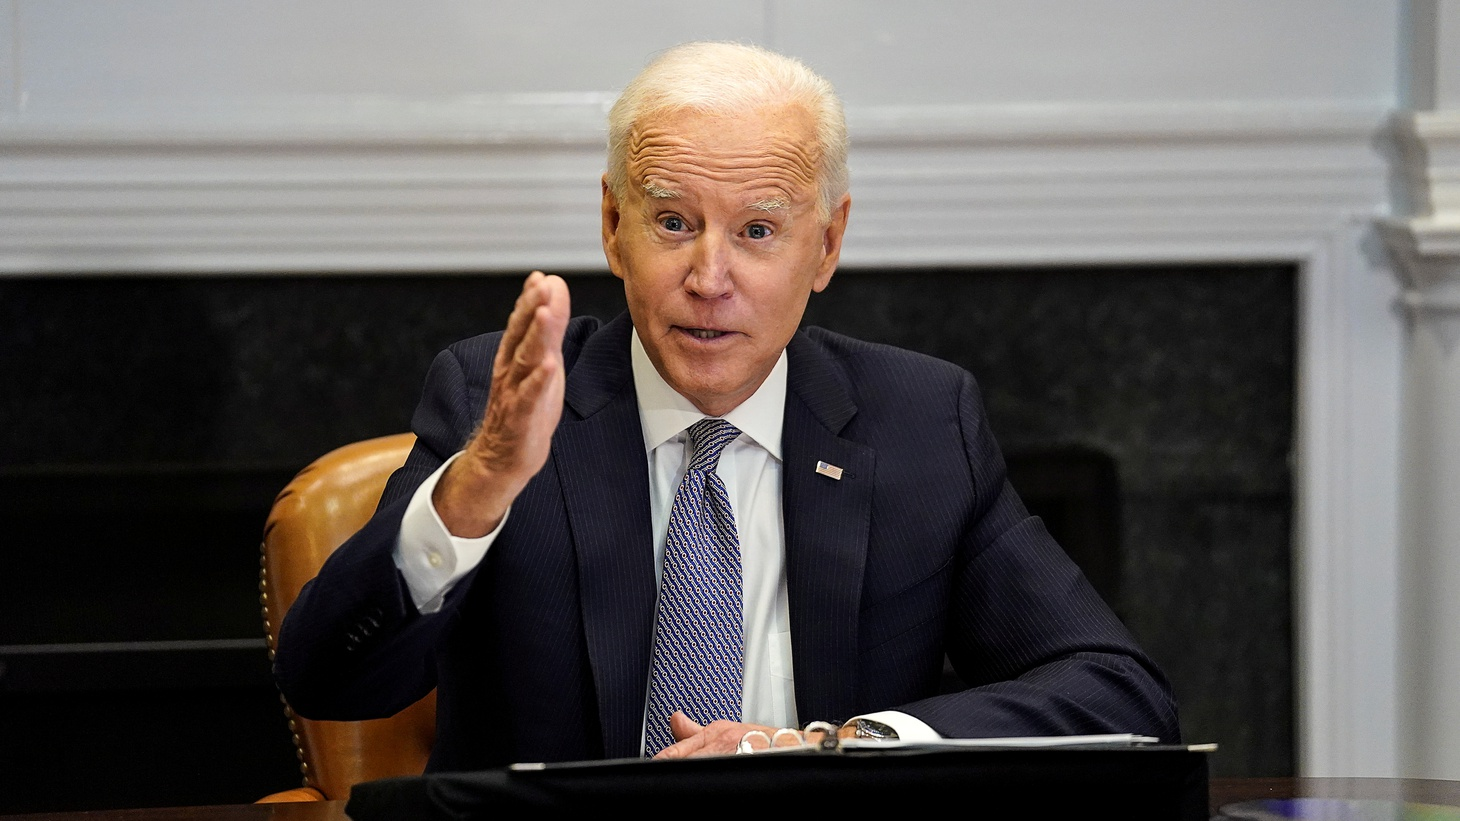 U.S. President Joe Biden speaks as he participates in the virtual CEO Summit on Semiconductor and Supply Chain Resilience from the Roosevelt Room at the White House in Washington, U.S., April 12, 2021.